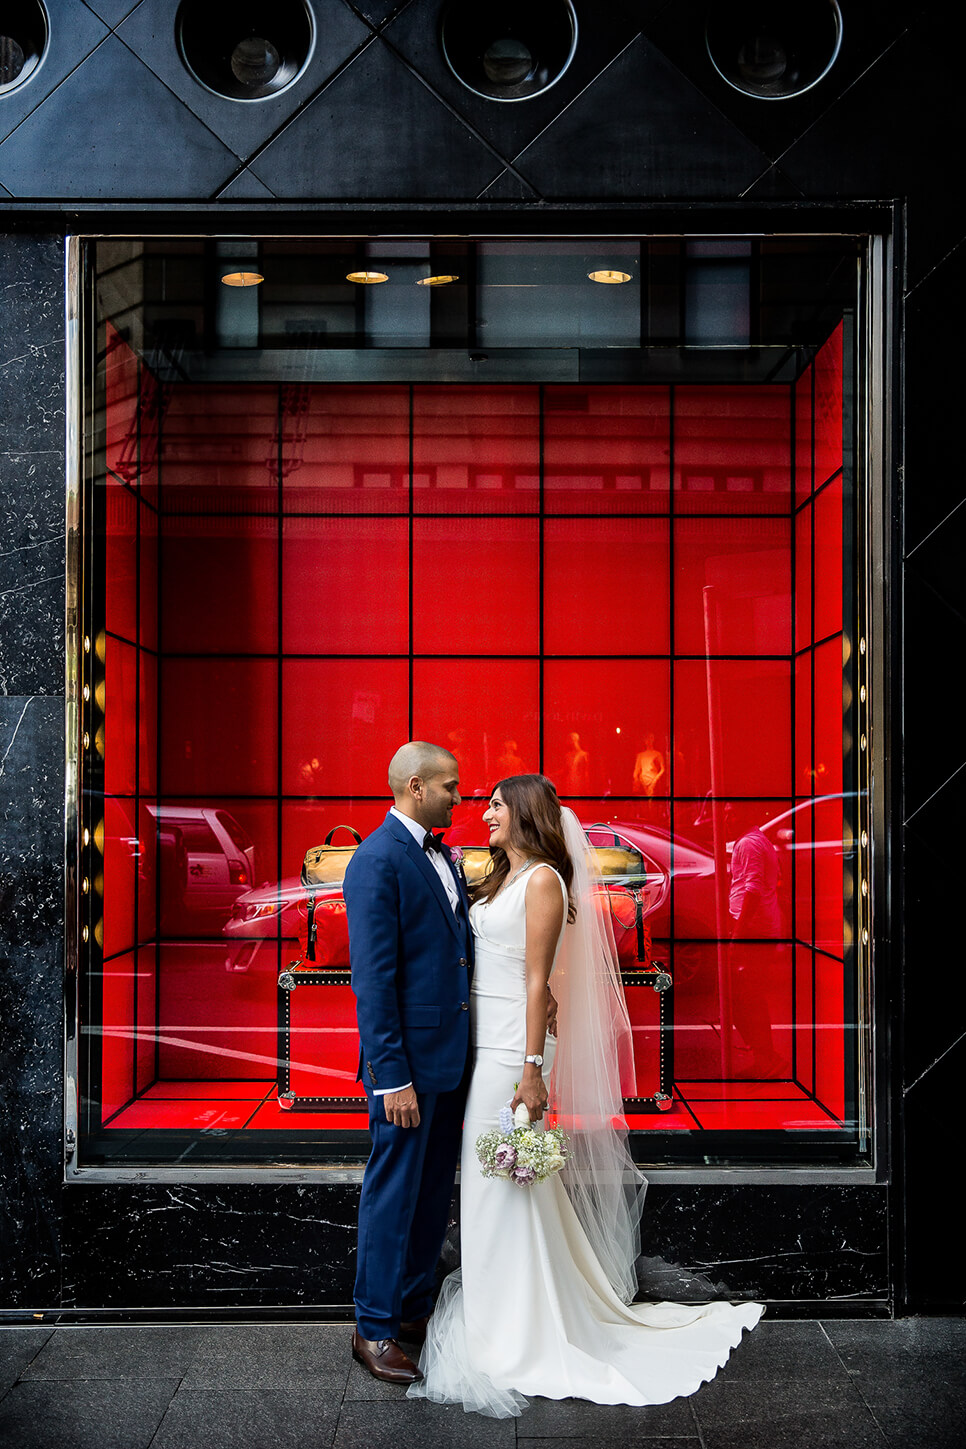 Bride and Groom in front of store window with a red background